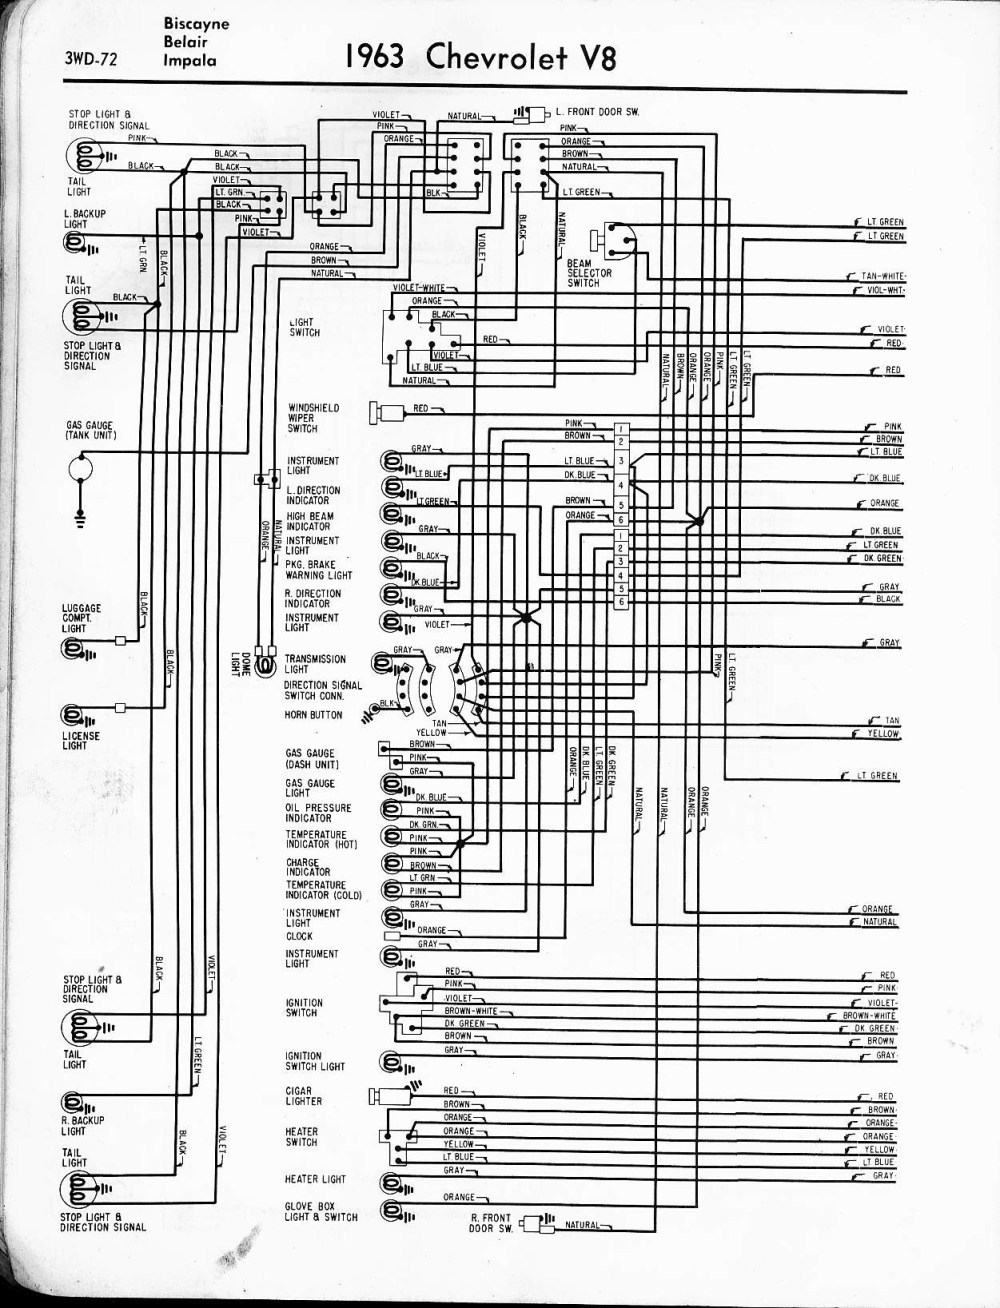 medium resolution of chevrolet bel air diagram complete 1966 chevrolet bel air wiring 1964 impala dash wiring diagram 1964 impala wiring diagram